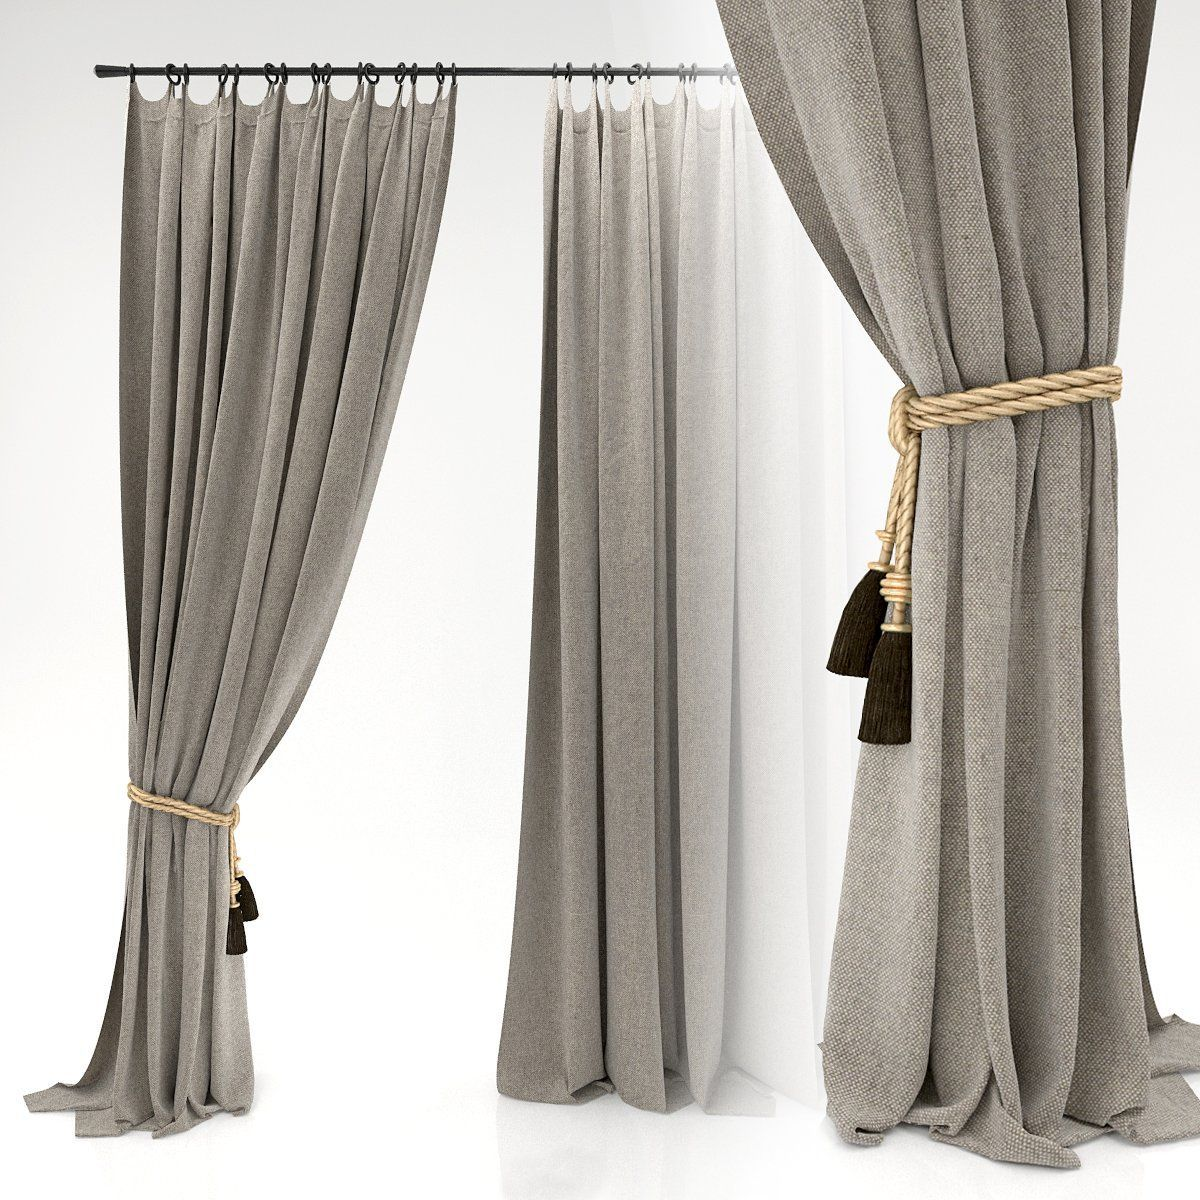 Bedroom Curtains 63 Inches Long Curtainpoles Windowtreatmentsdesign Stylish Curtains Curtains Curtains With Blinds